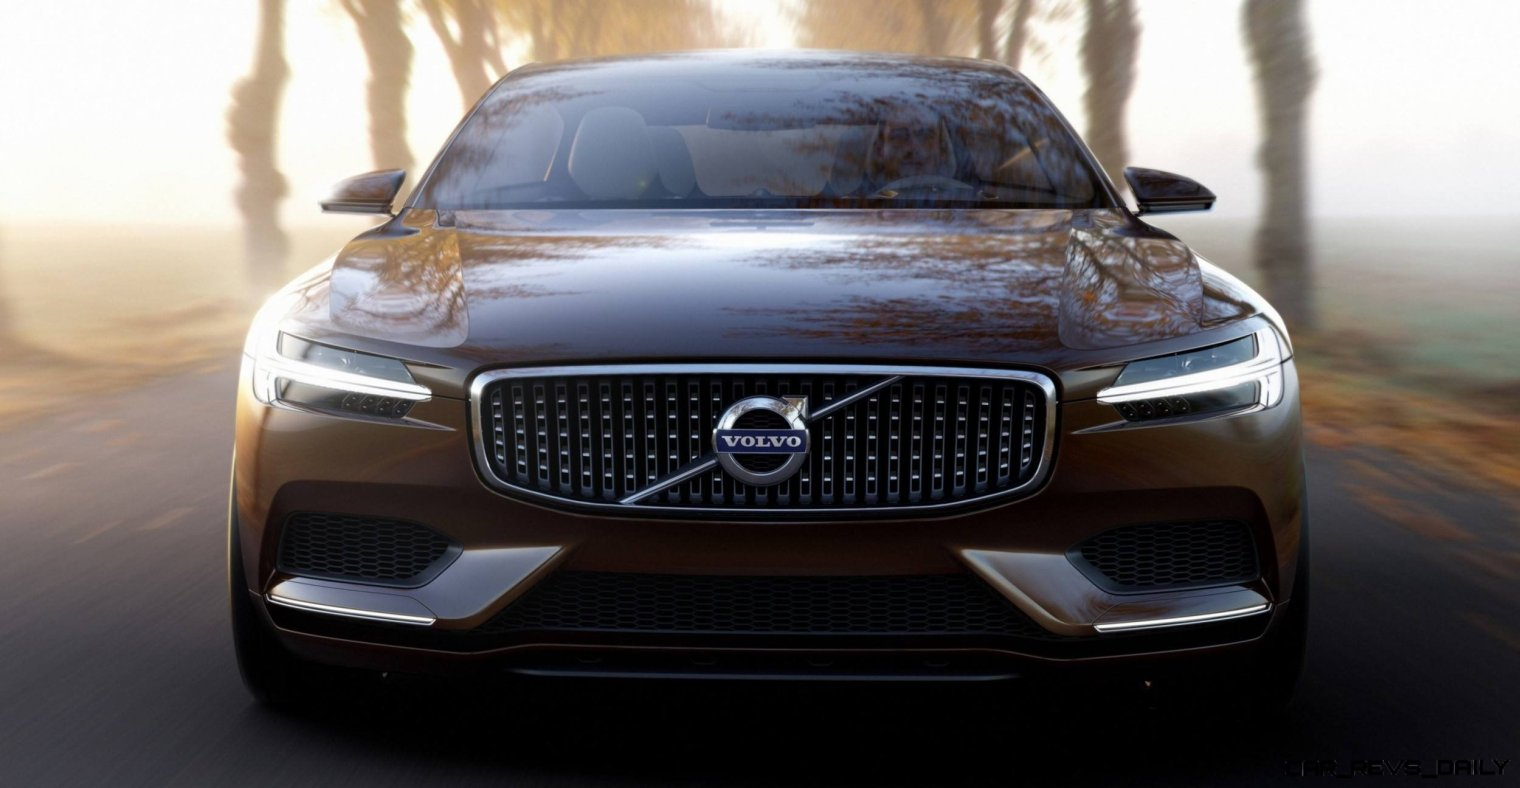 Concept Estate Confirms It! Volvo's New Design Lead Th. Ingenlath Should Be Sweden's Man of the Year 1